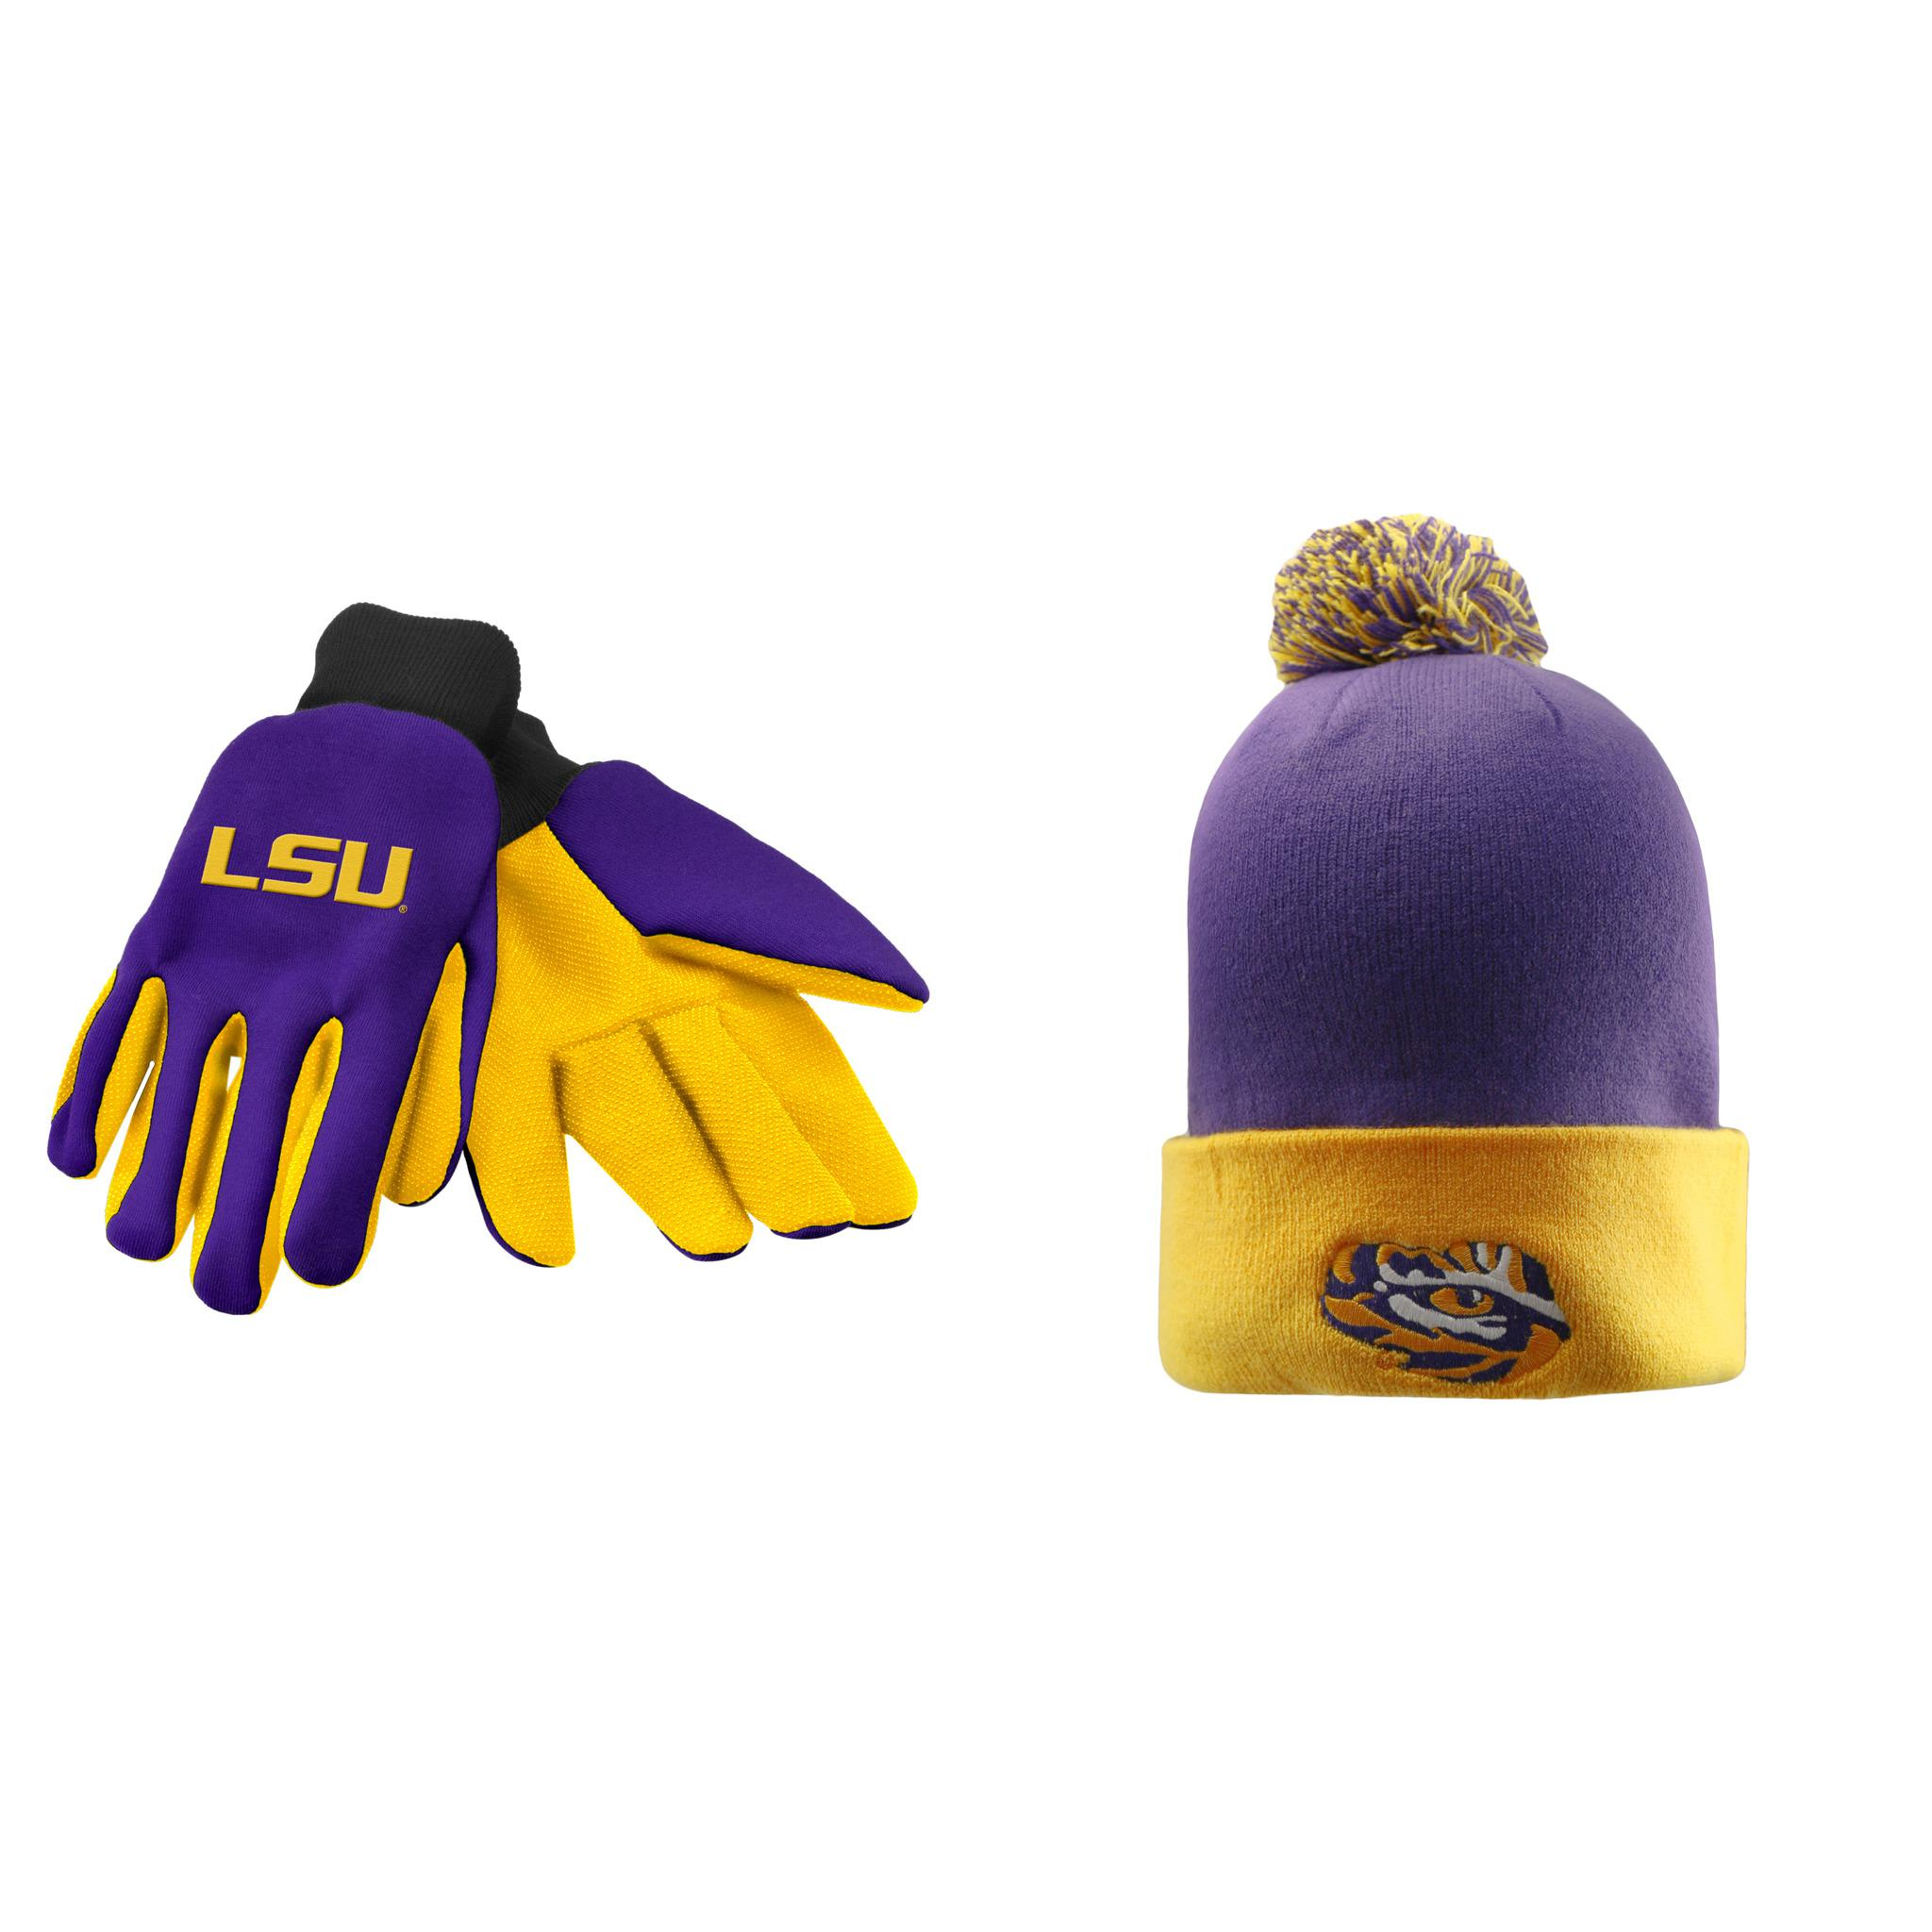 NCAA LSU Tigers Pom Beanie Hat And Grip Work Glove 2 Pack Bundle ...